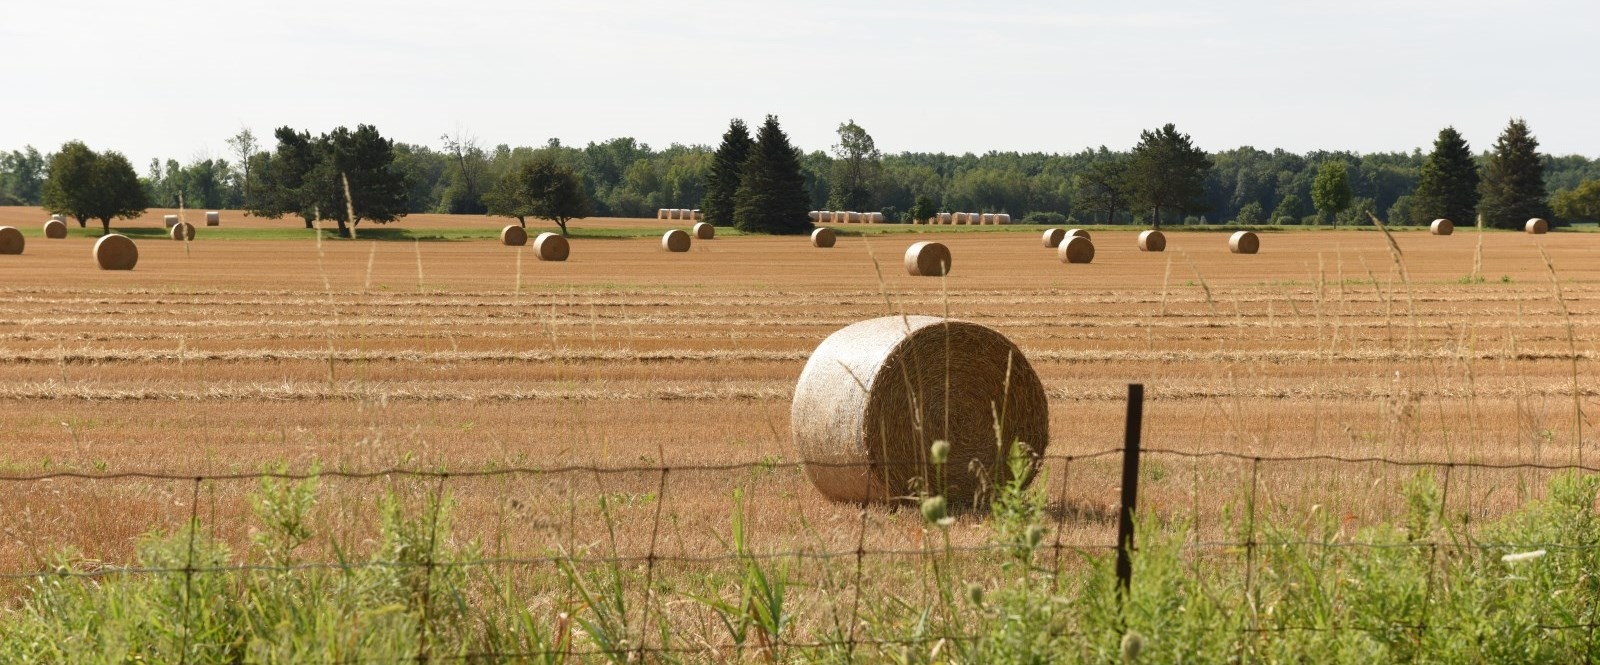 field with round hay bales